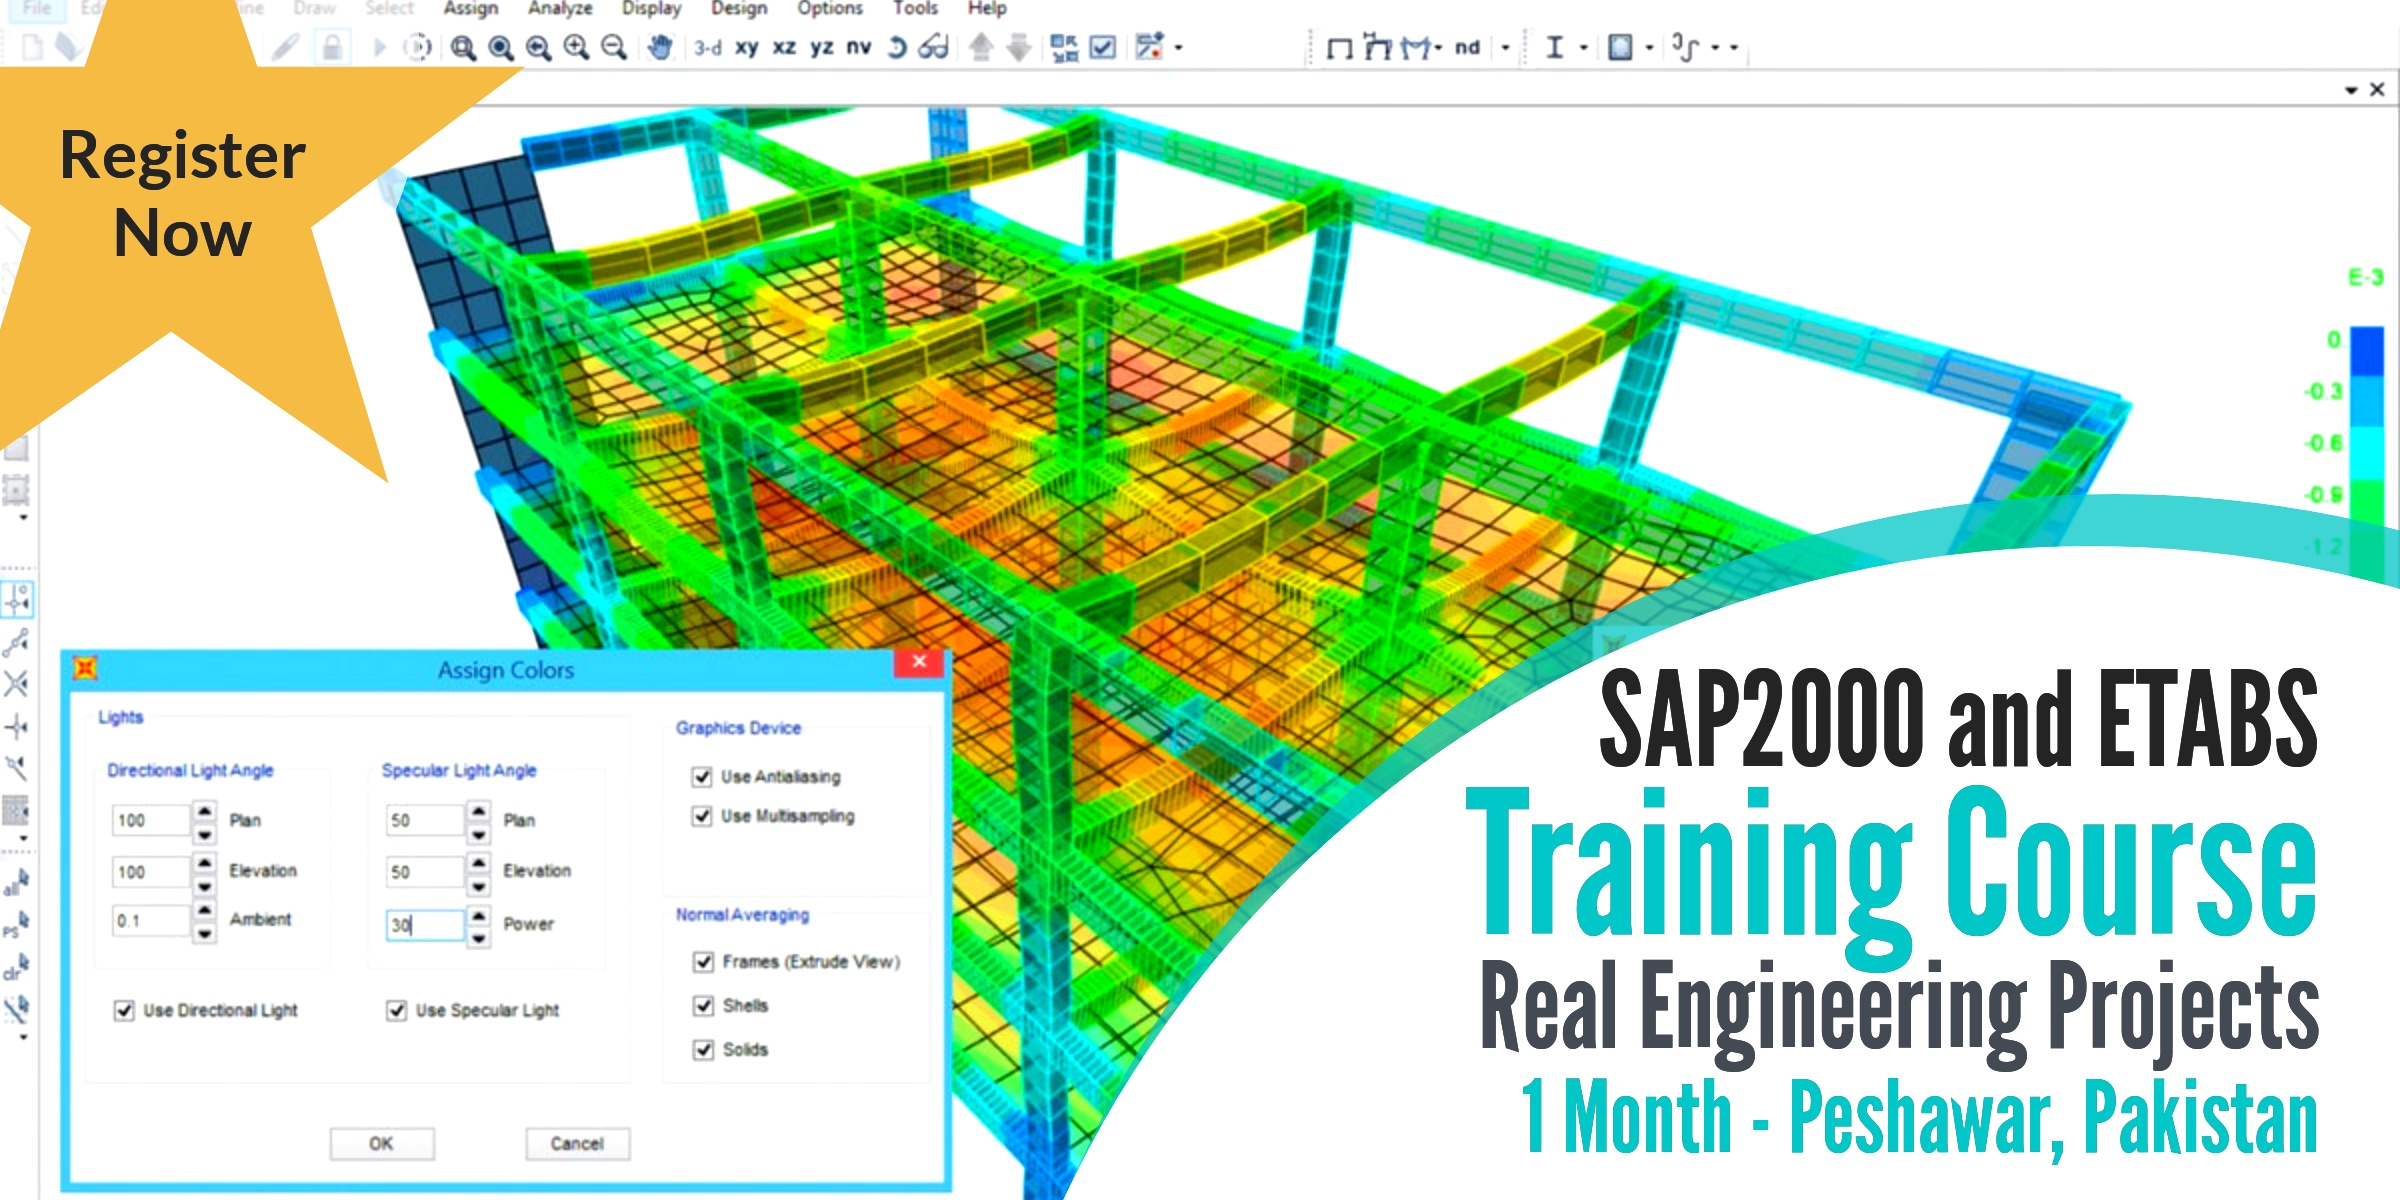 SAP 2000 and ETABS Training Course on Realworld Civil Engineering